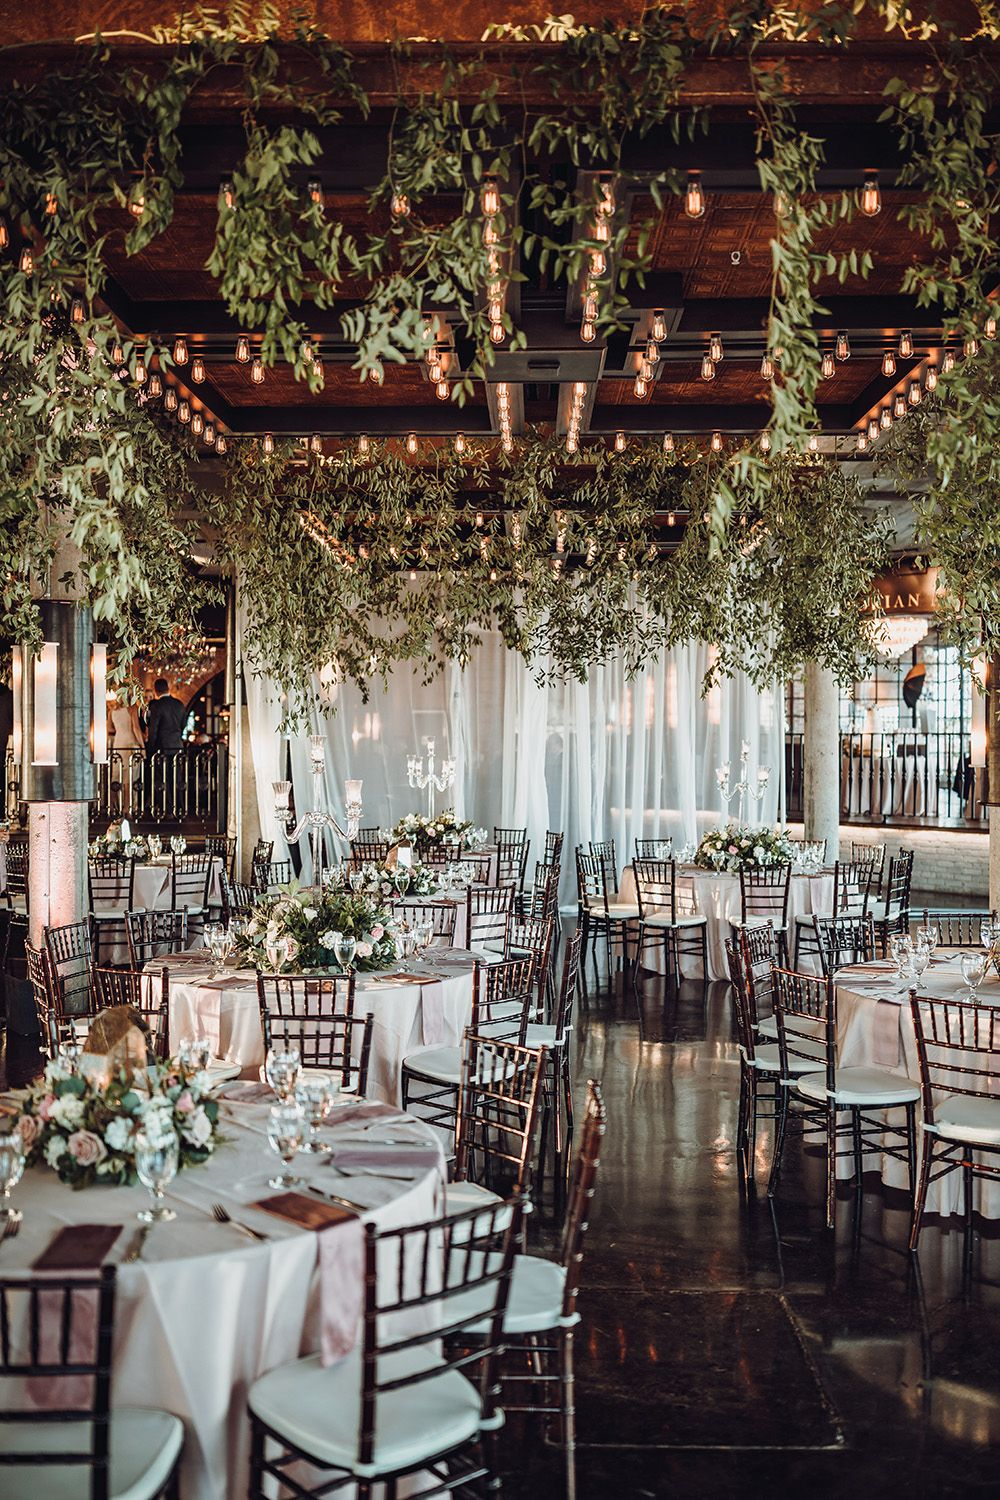 Dream Wedding with Ivy Floral Ceiling - Gorgeous Centerpiece Ideas